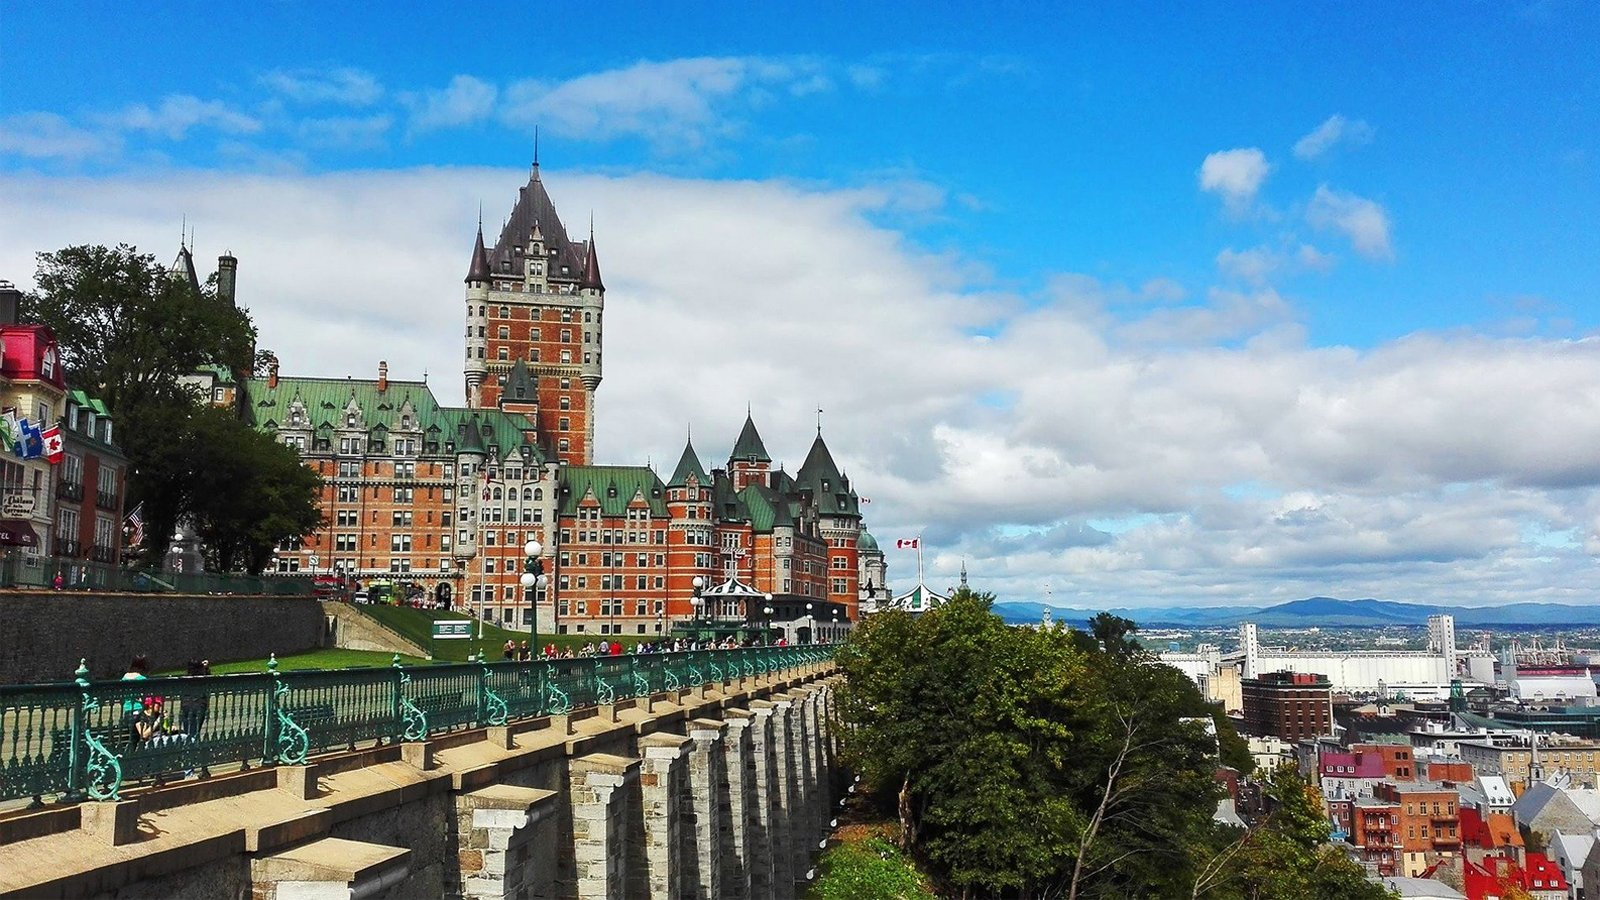 View of Chateau Le Frontenac in Quebec City, Canada